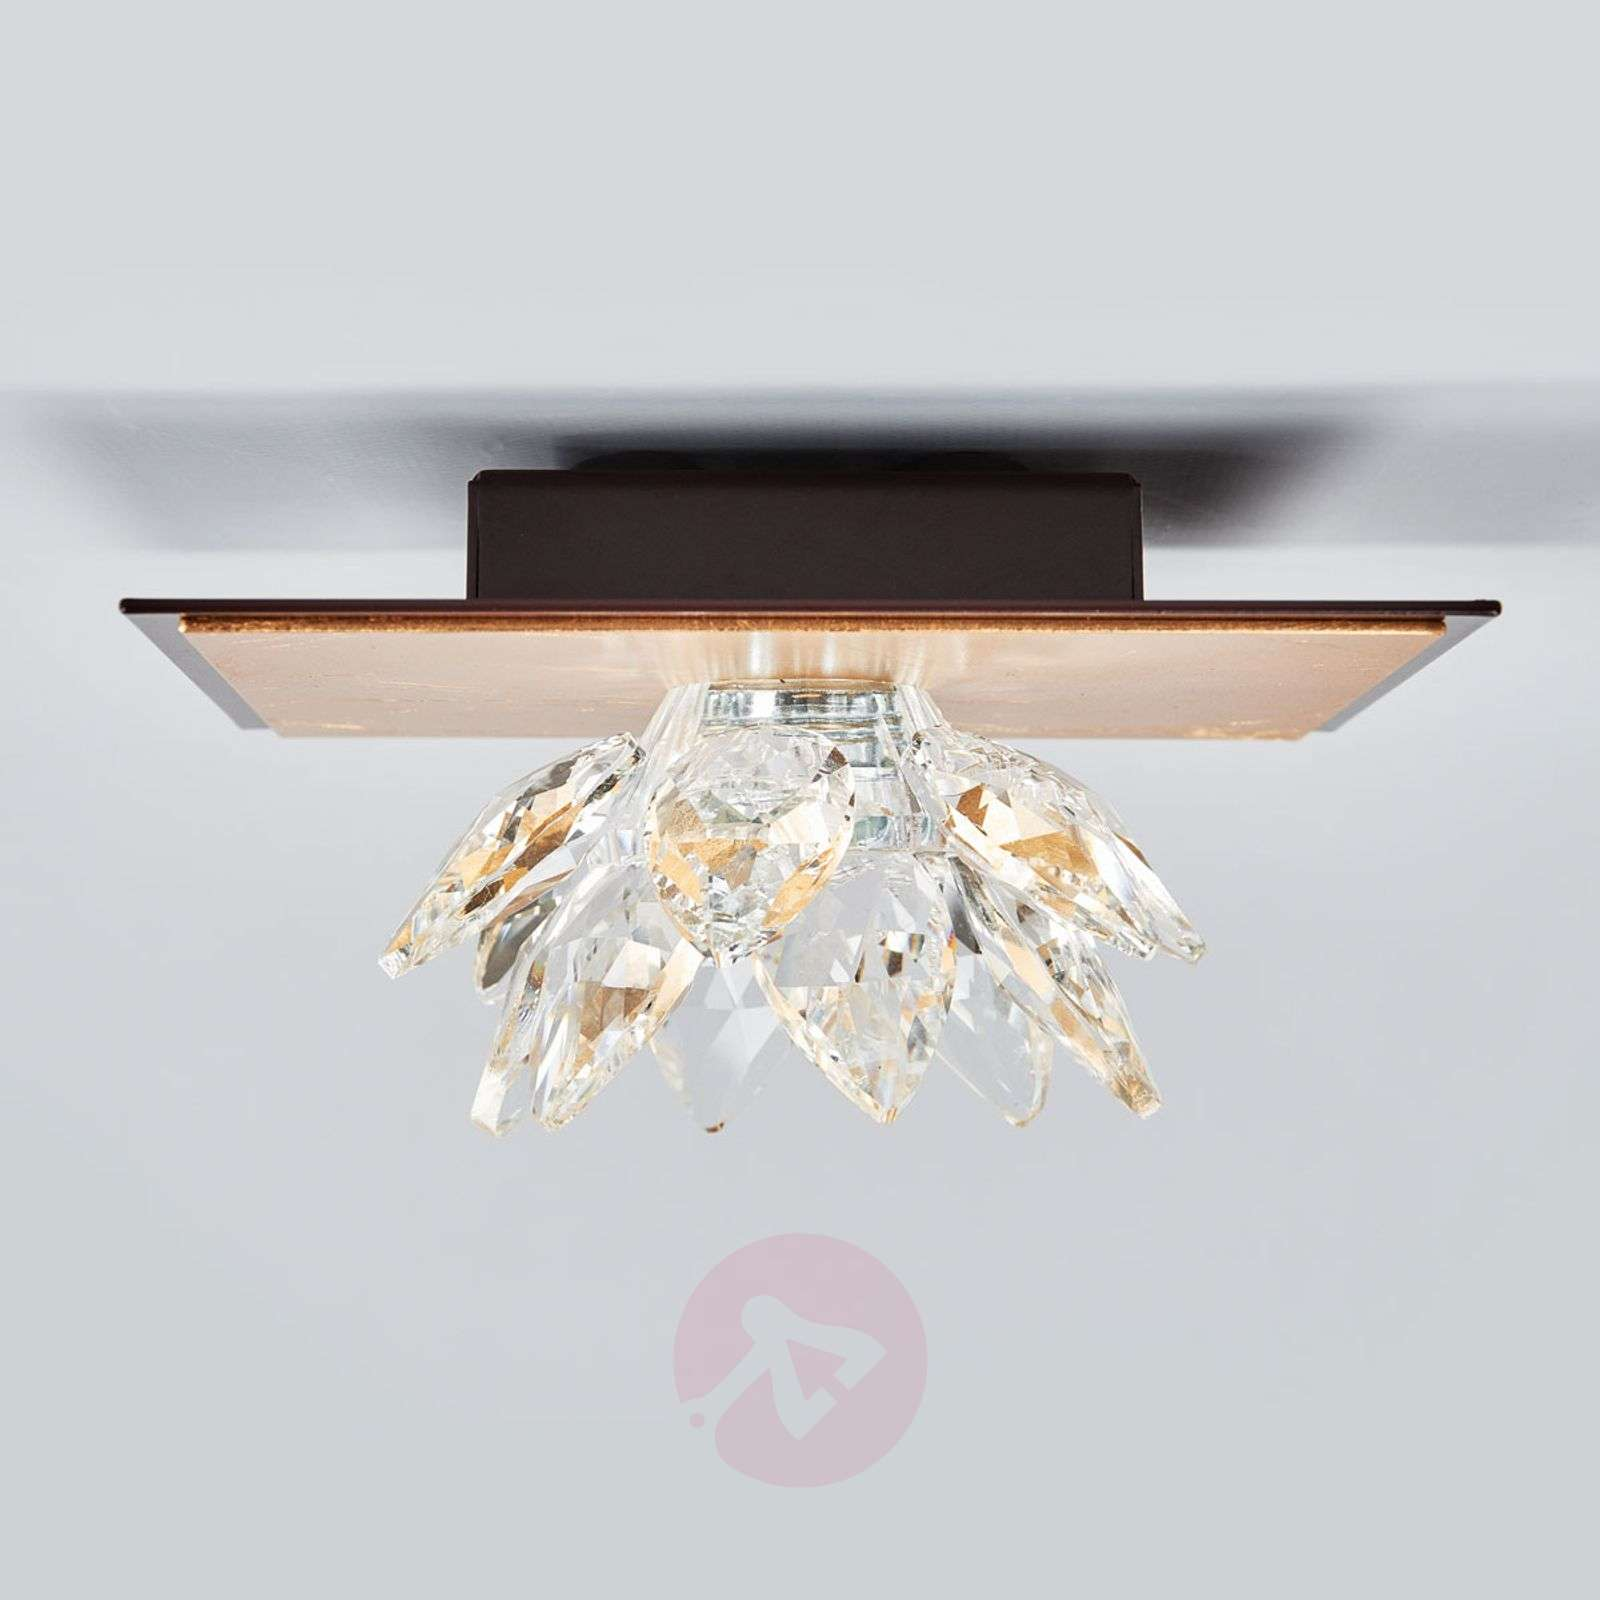 Fiore ceiling light with gold leaf and crystal-5505542-01